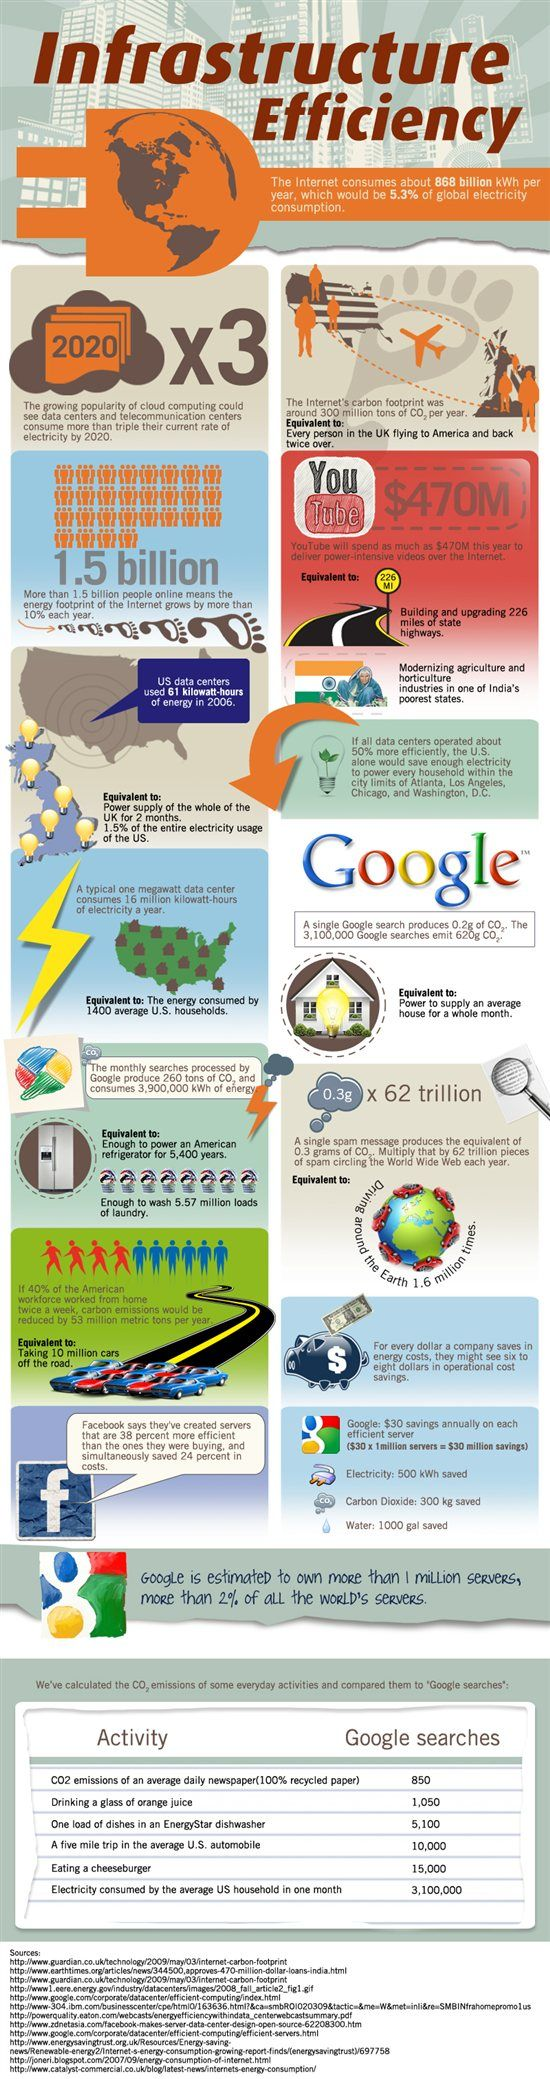 The growth of cloud computing and the use of data centers is supposed to be a good thing, right? Well, not necessarily -- when you consider how the Internet's massive carbon footprint is expanding along with them. Making data centers more efficient can save money and reduce their environmental impact. And when companies realize savings in their energy costs, they'll also see their operational costs drop. For instance, Facebook and Google both credit more efficient servers